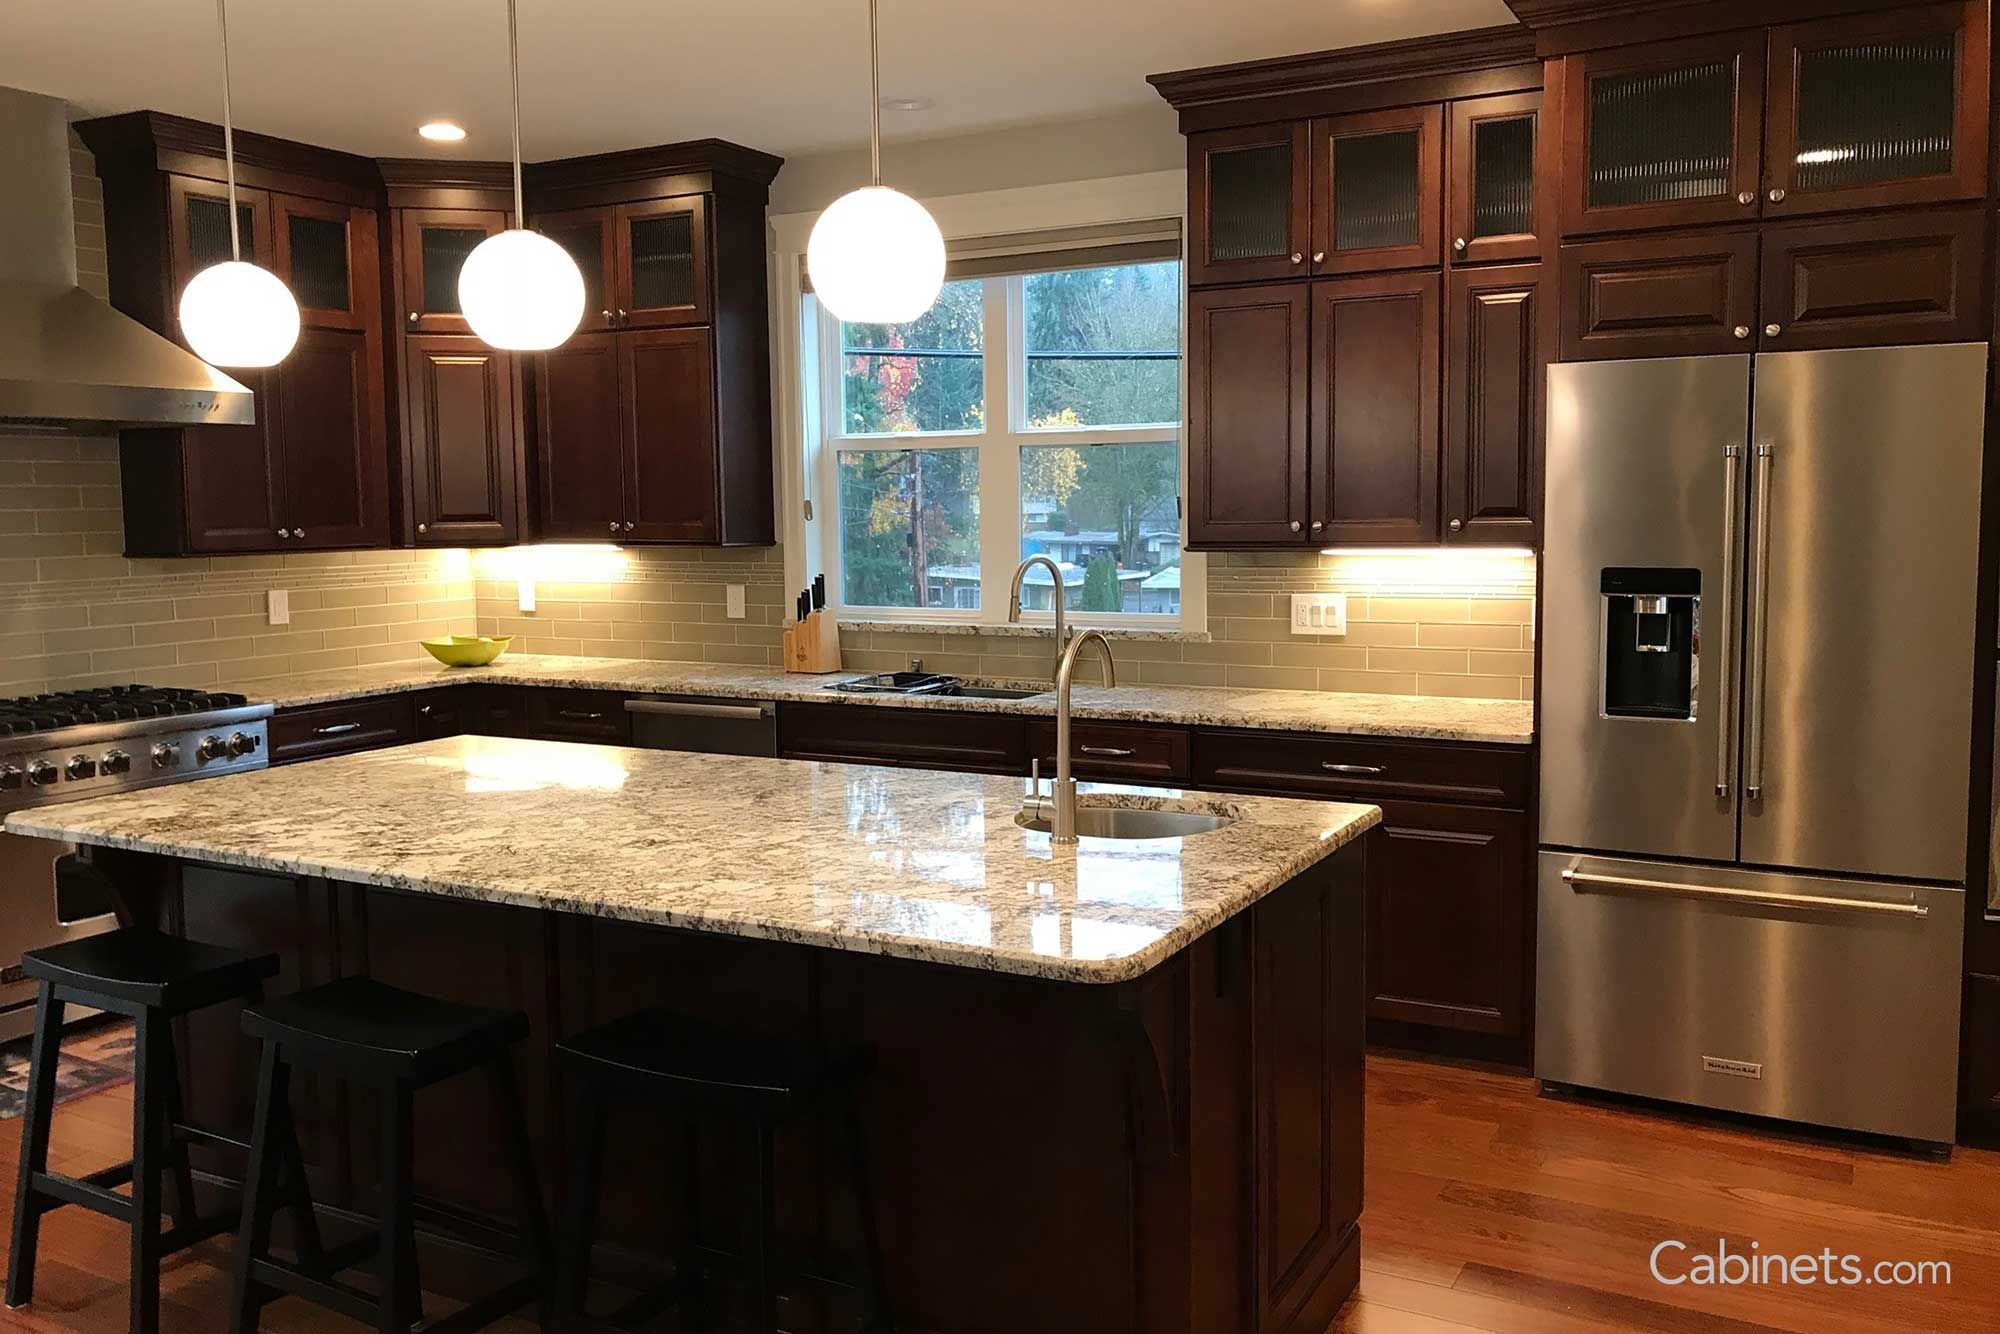 youngstown maple java coffee glaze glass upper cabinets kitchen kitchen remodel on kitchen cabinets java id=53979